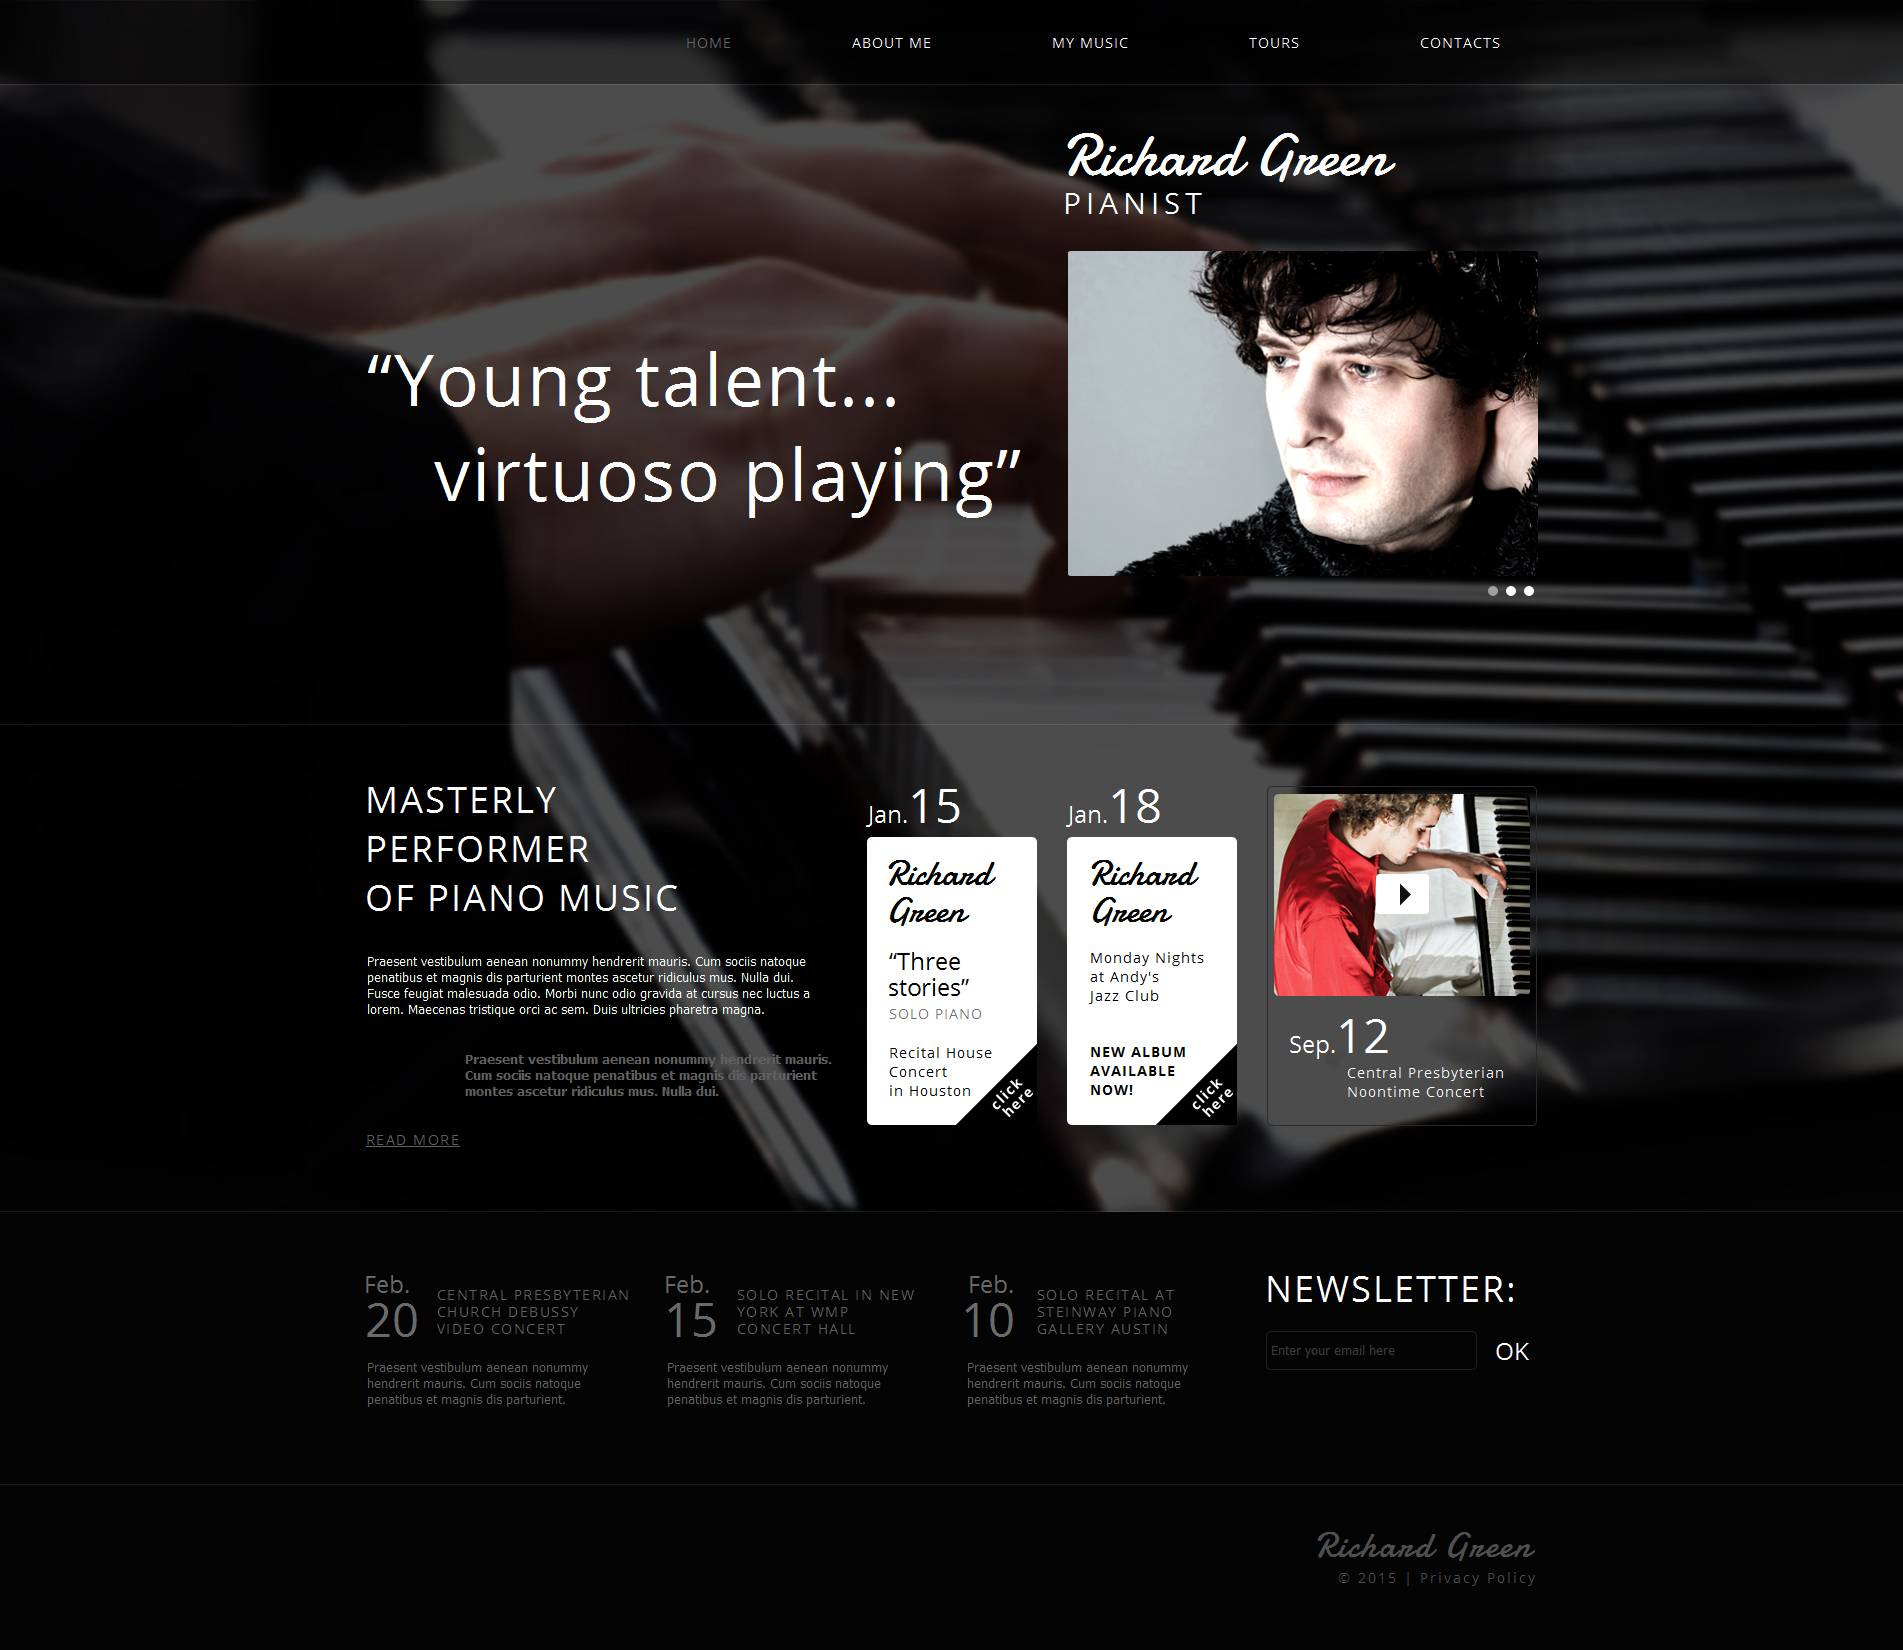 The Richard Green Pianist Moto CMS HTML Design 53214, one of the best Moto CMS HTML templates of its kind (personal pages), also known as Richard Green pianist Moto CMS HTML template, site Moto CMS HTML template, bio Moto CMS HTML template, biograpthy Moto CMS HTML template, resume Moto CMS HTML template, album Moto CMS HTML template, repertoire Moto CMS HTML template, schedule Moto CMS HTML template, personal page Moto CMS HTML template, about and related with Richard Green pianist, site, bio, biograpthy, resume, album, repertoire, schedule, personal page, about, etc.